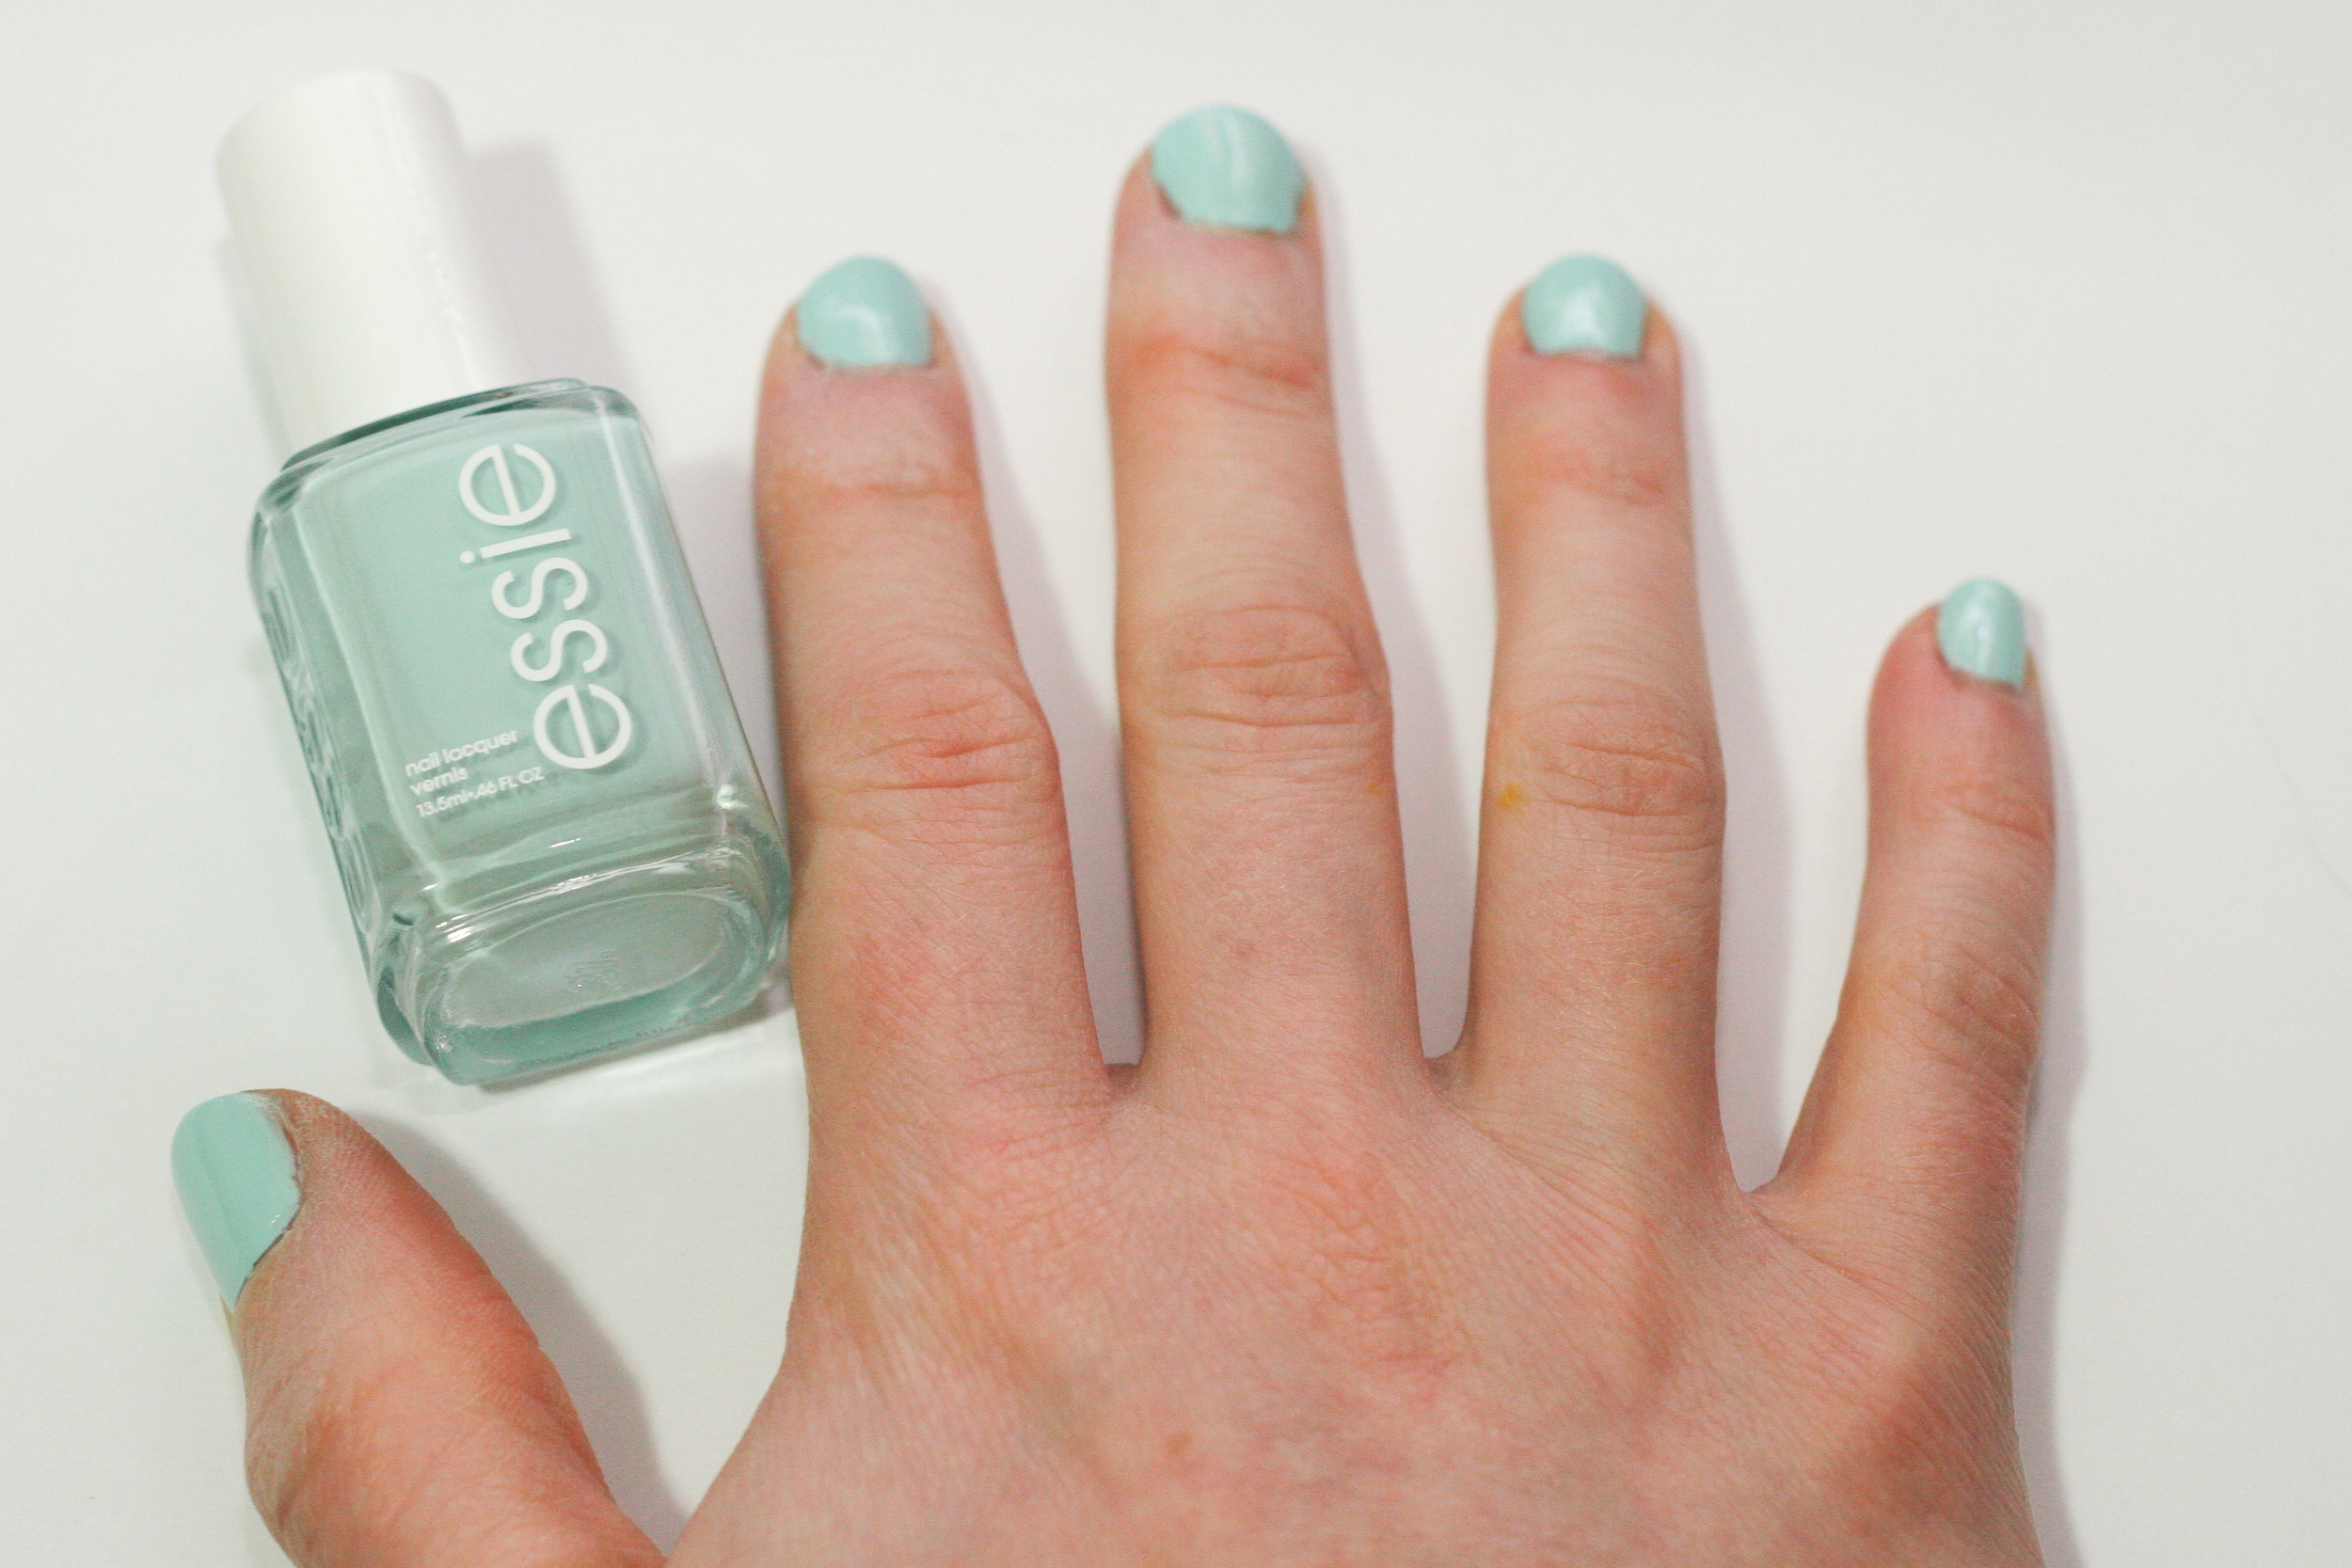 Two coats of Essie's Mint Candy Apple nail polish with clear OPI base coat and top coat.